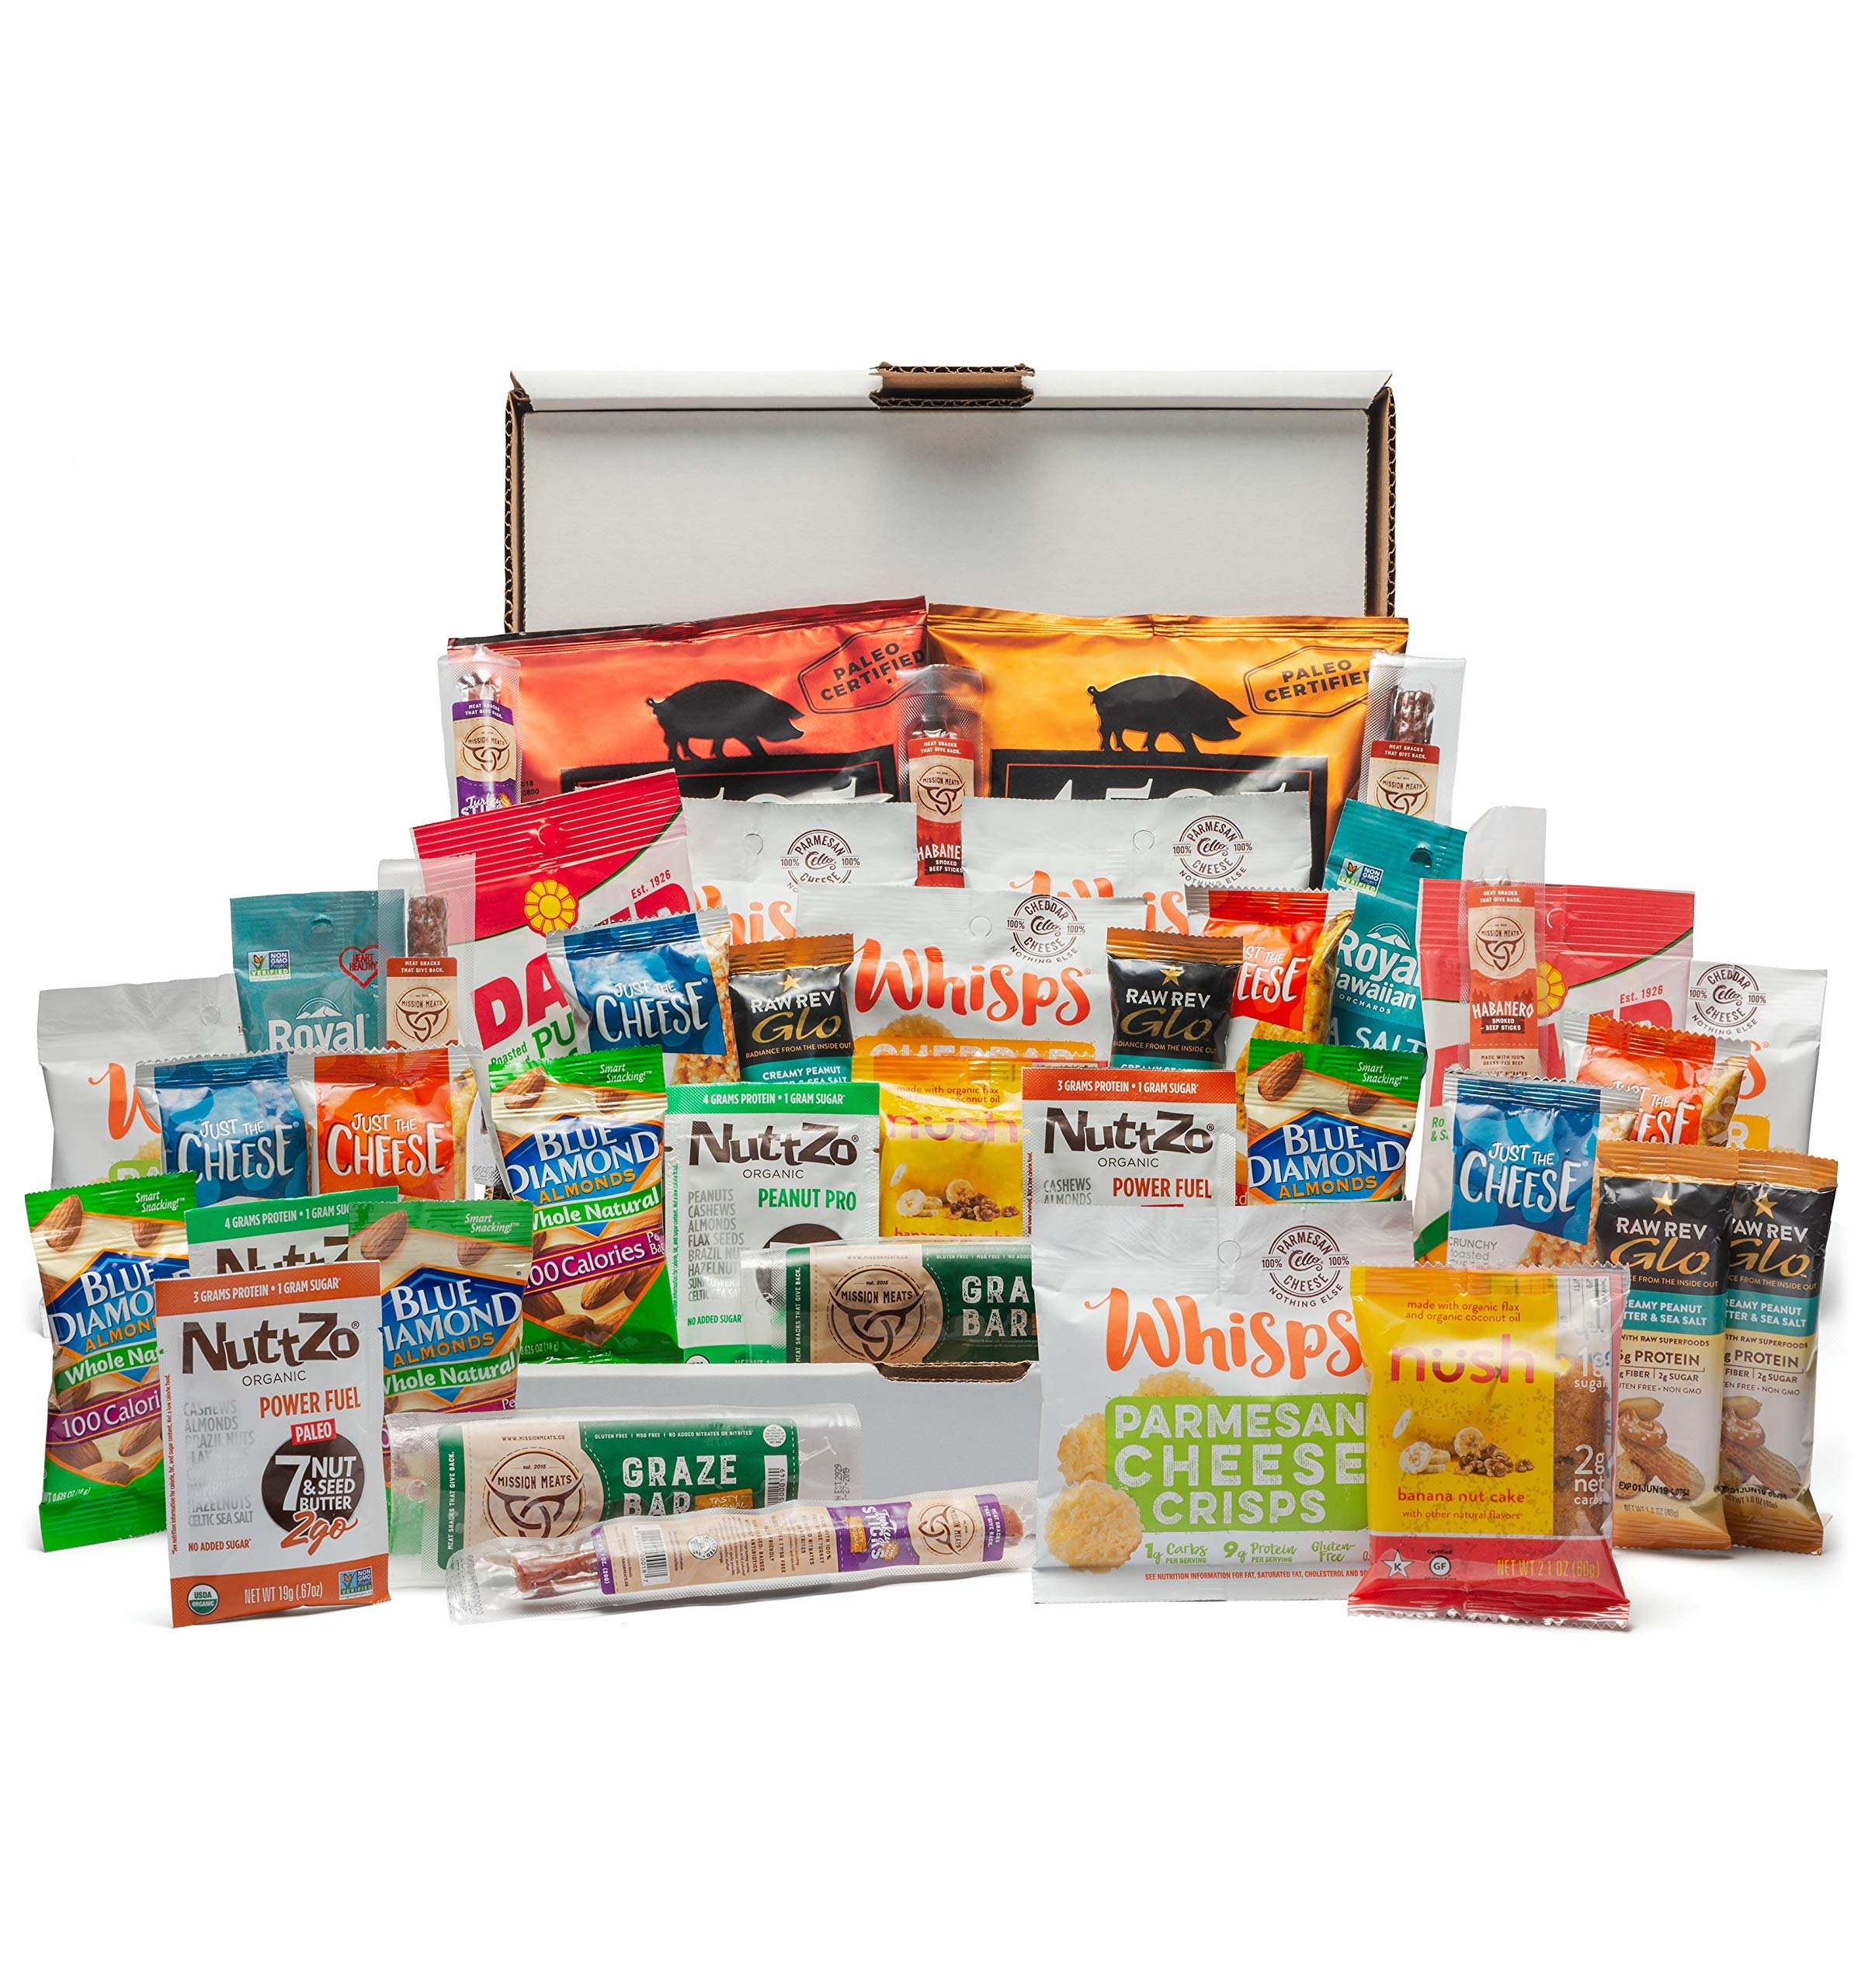 Keto Snack Box (40 Count)-Ultra Low Carb Snacks-Ketogenic Friendly, Gluten Free, Low Sugar Healthy Keto Gift Box Variety Pack - Protein Bars, Pork Rinds, Cheese Crisps, Nut, Jerky, and More by Cedar Mountain Trade Co. (Image #1)